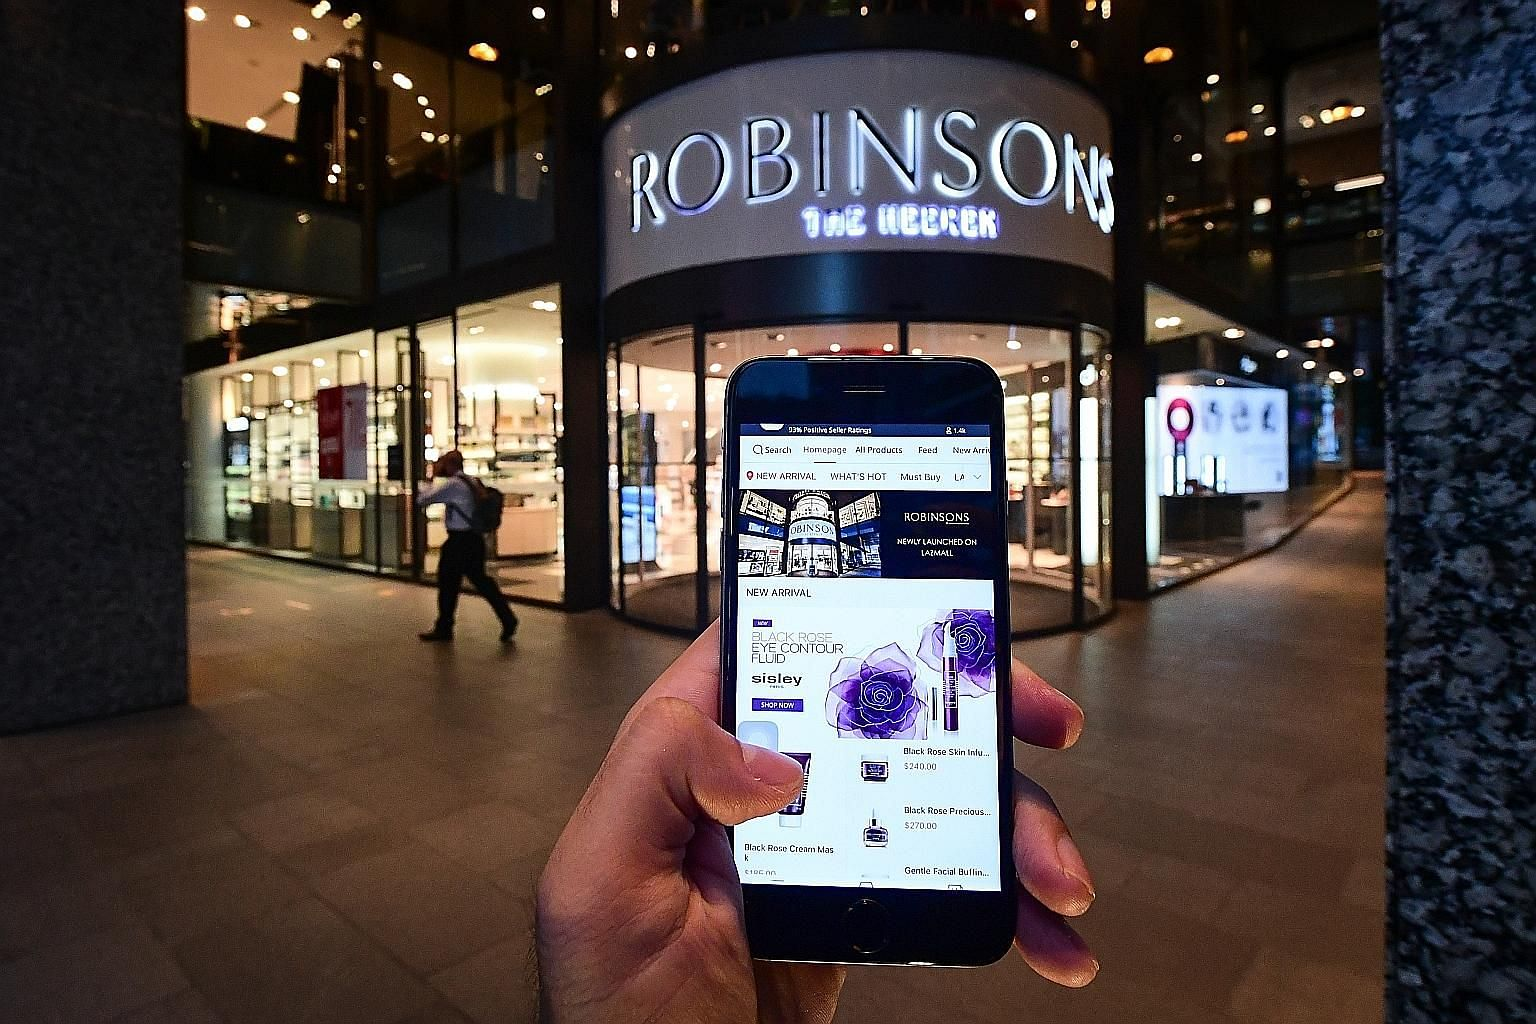 Robinsons went live with added storefronts on Lazada in April, while Metro partnered the e-commerce platform in November last year during the Black Friday sale. Both department stores have their own websites.